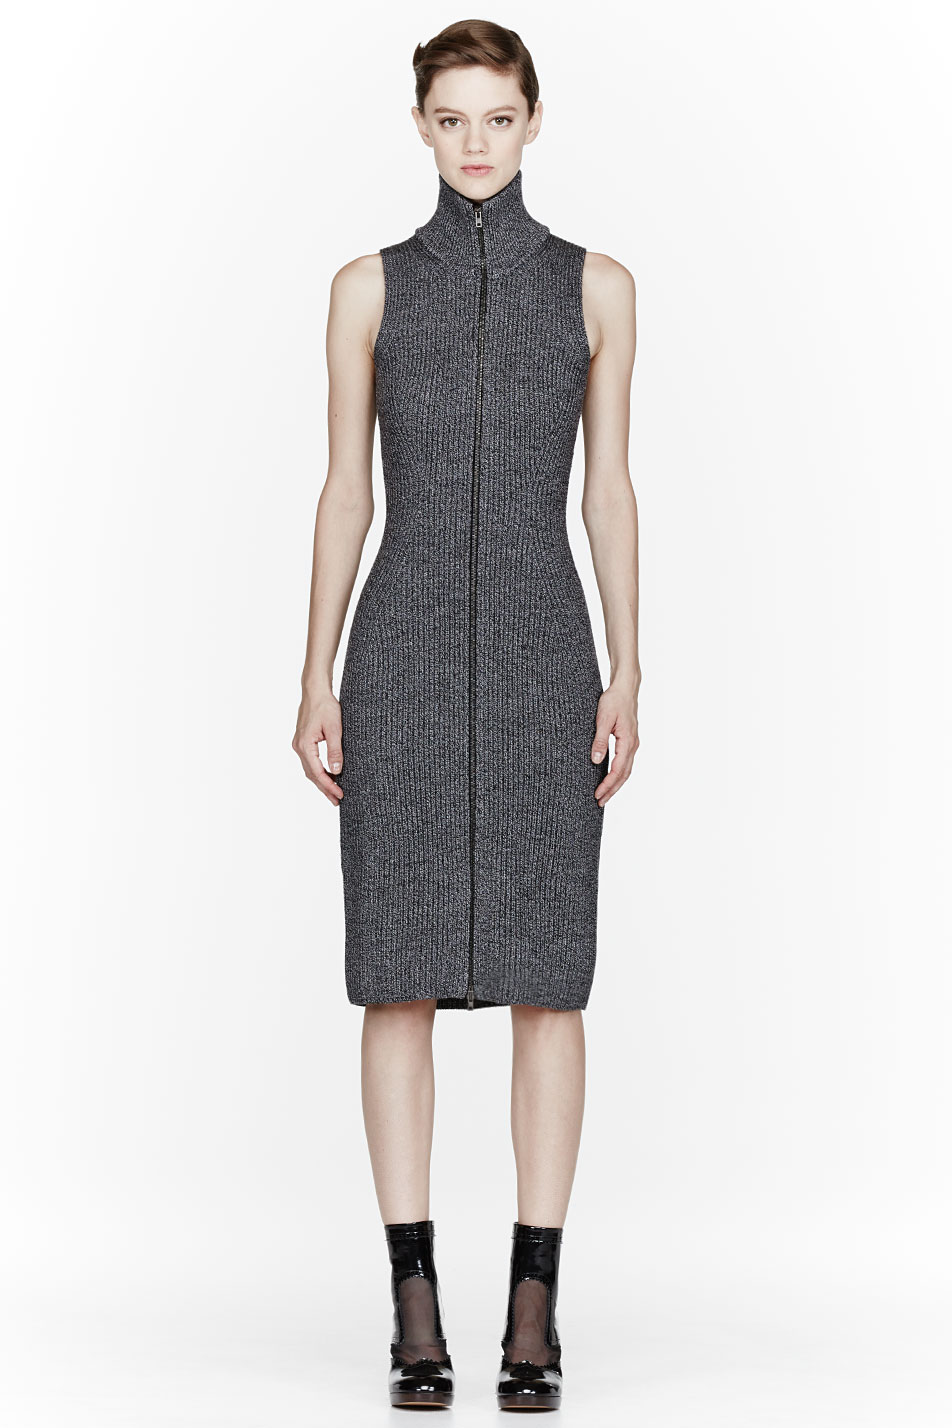 Buy a online exclusive designer dress at erlinelomantkgs831.ga or at and receive free returns within the continental U.S. Free returns only valid within the continental U.S. on full-priced designer dresses purchased at erlinelomantkgs831.ga or at